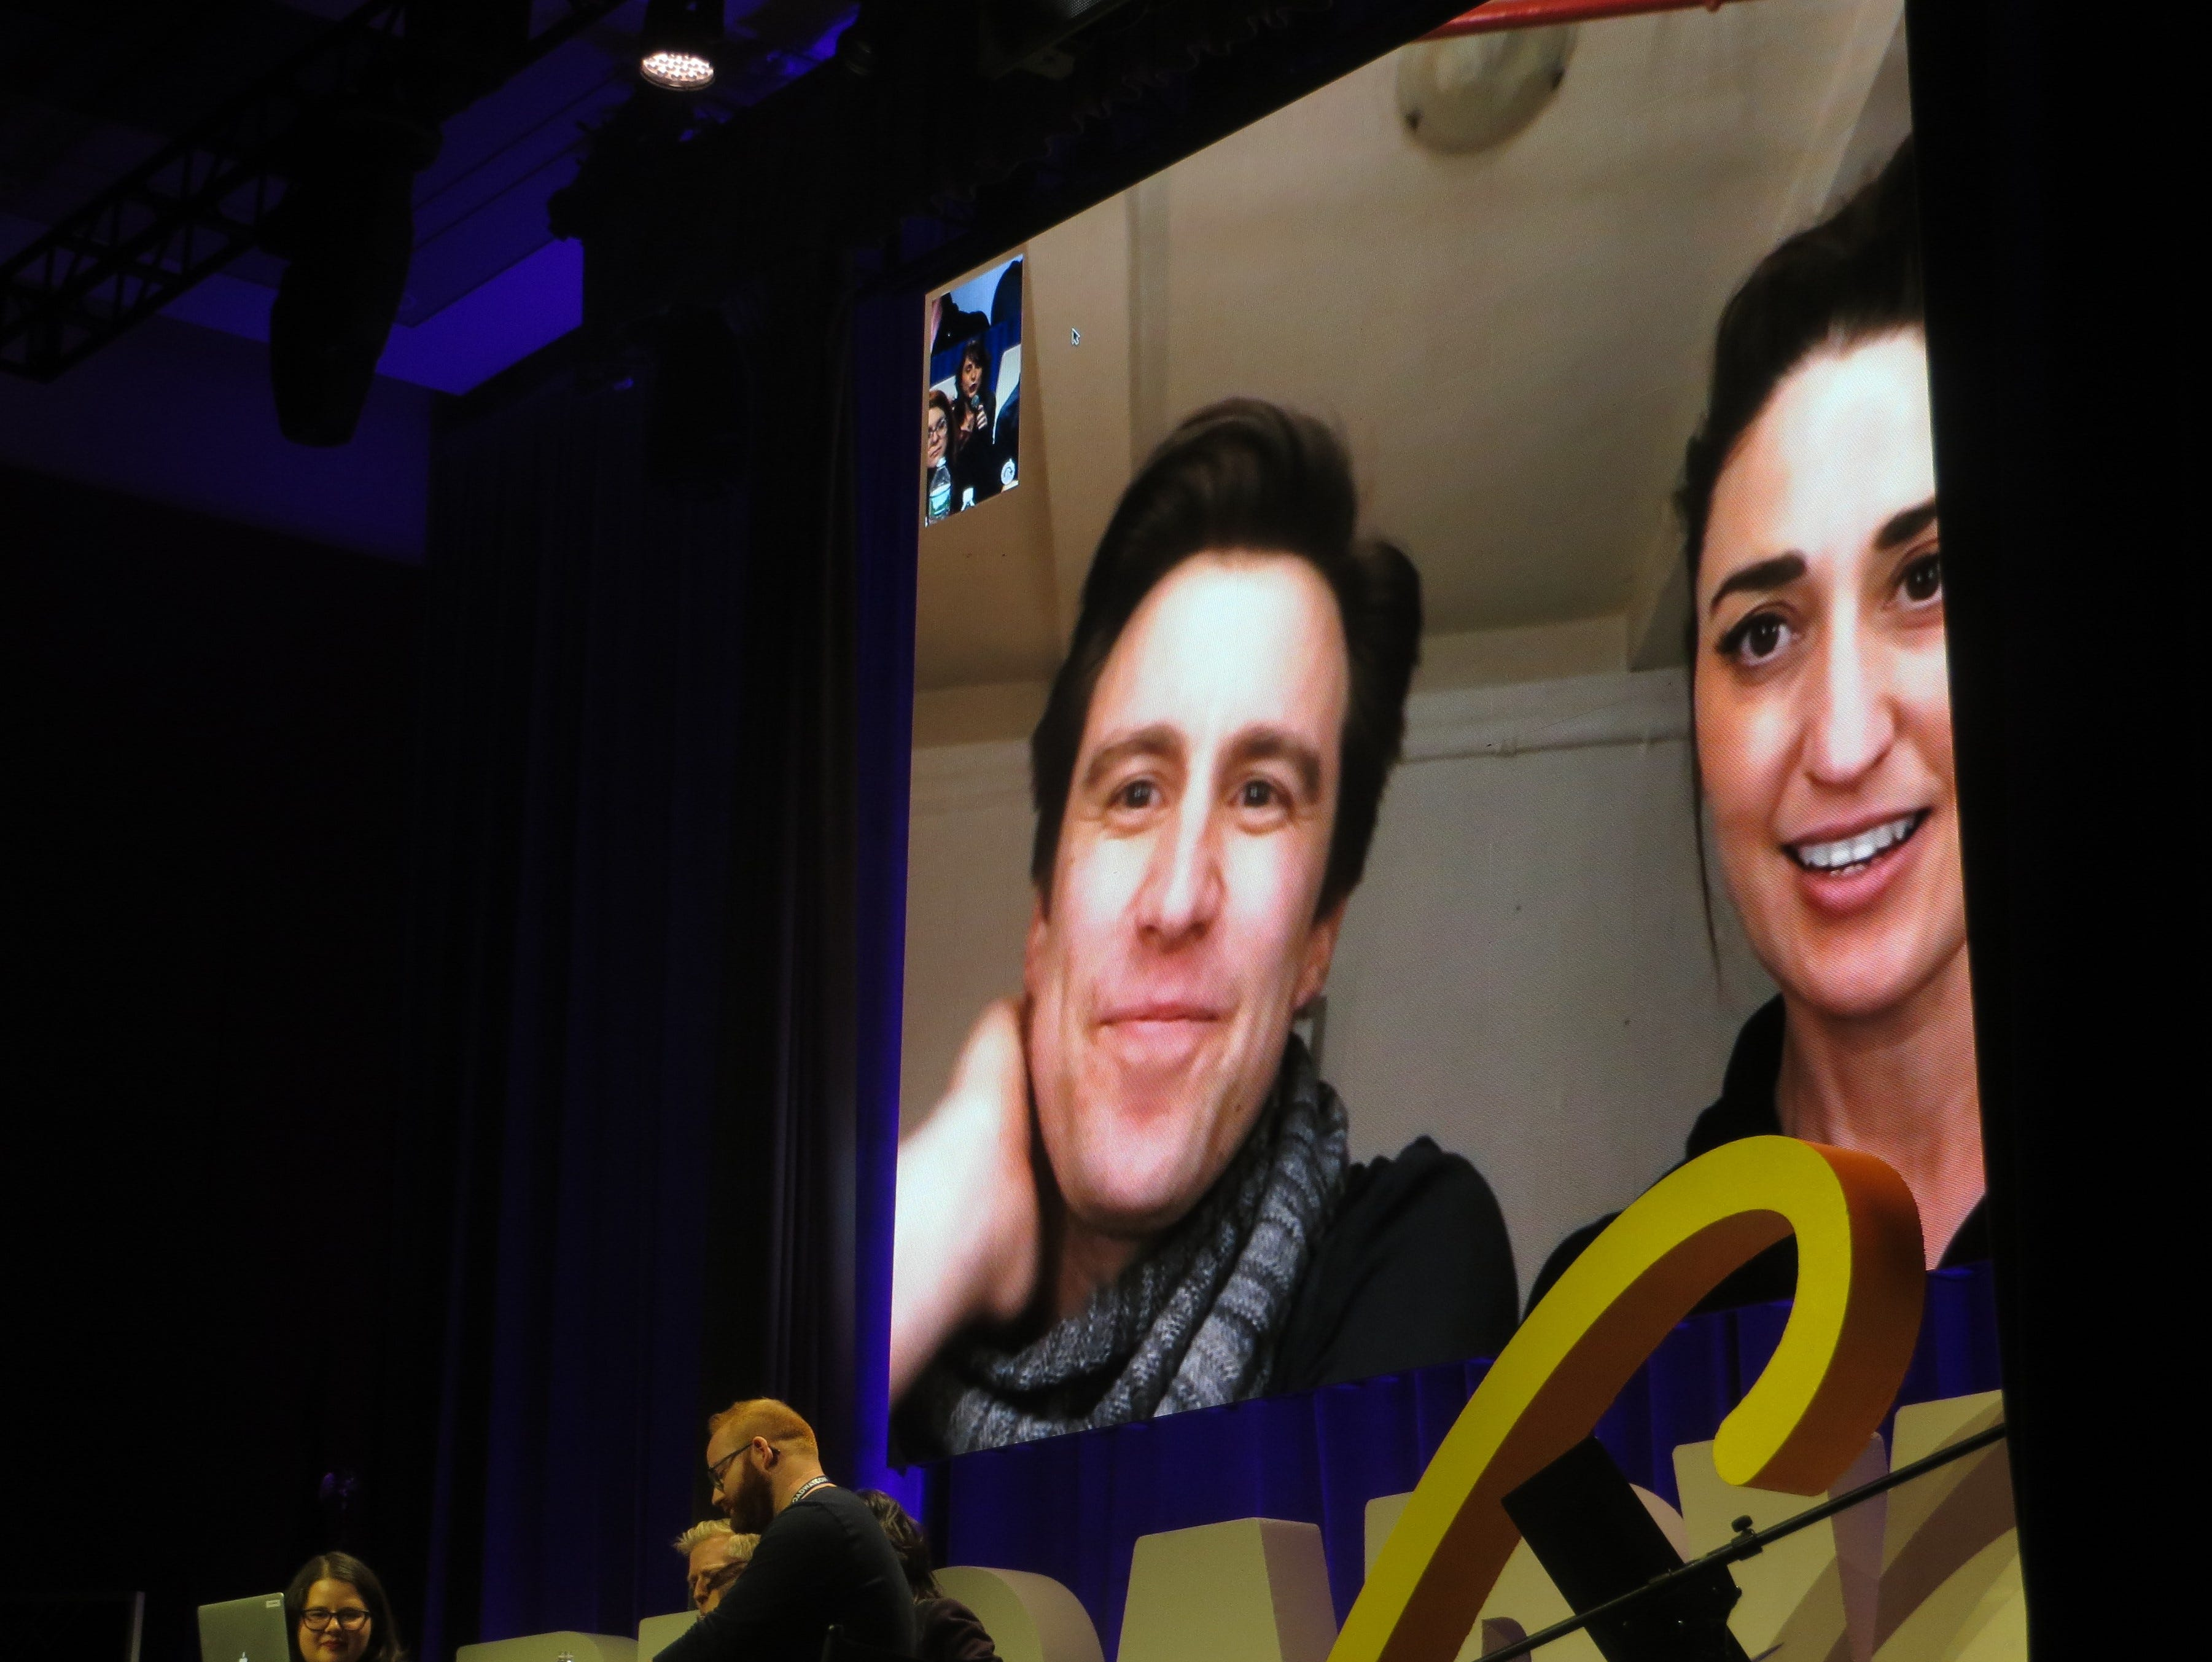 Gavin Creel and Sara Bareilles Facetime the audience during the Blizzard Party Line at BroadwayCon 2019, held Jan. 11 to 13, 2019, at the New York Hilton Midtown in Manhattan.